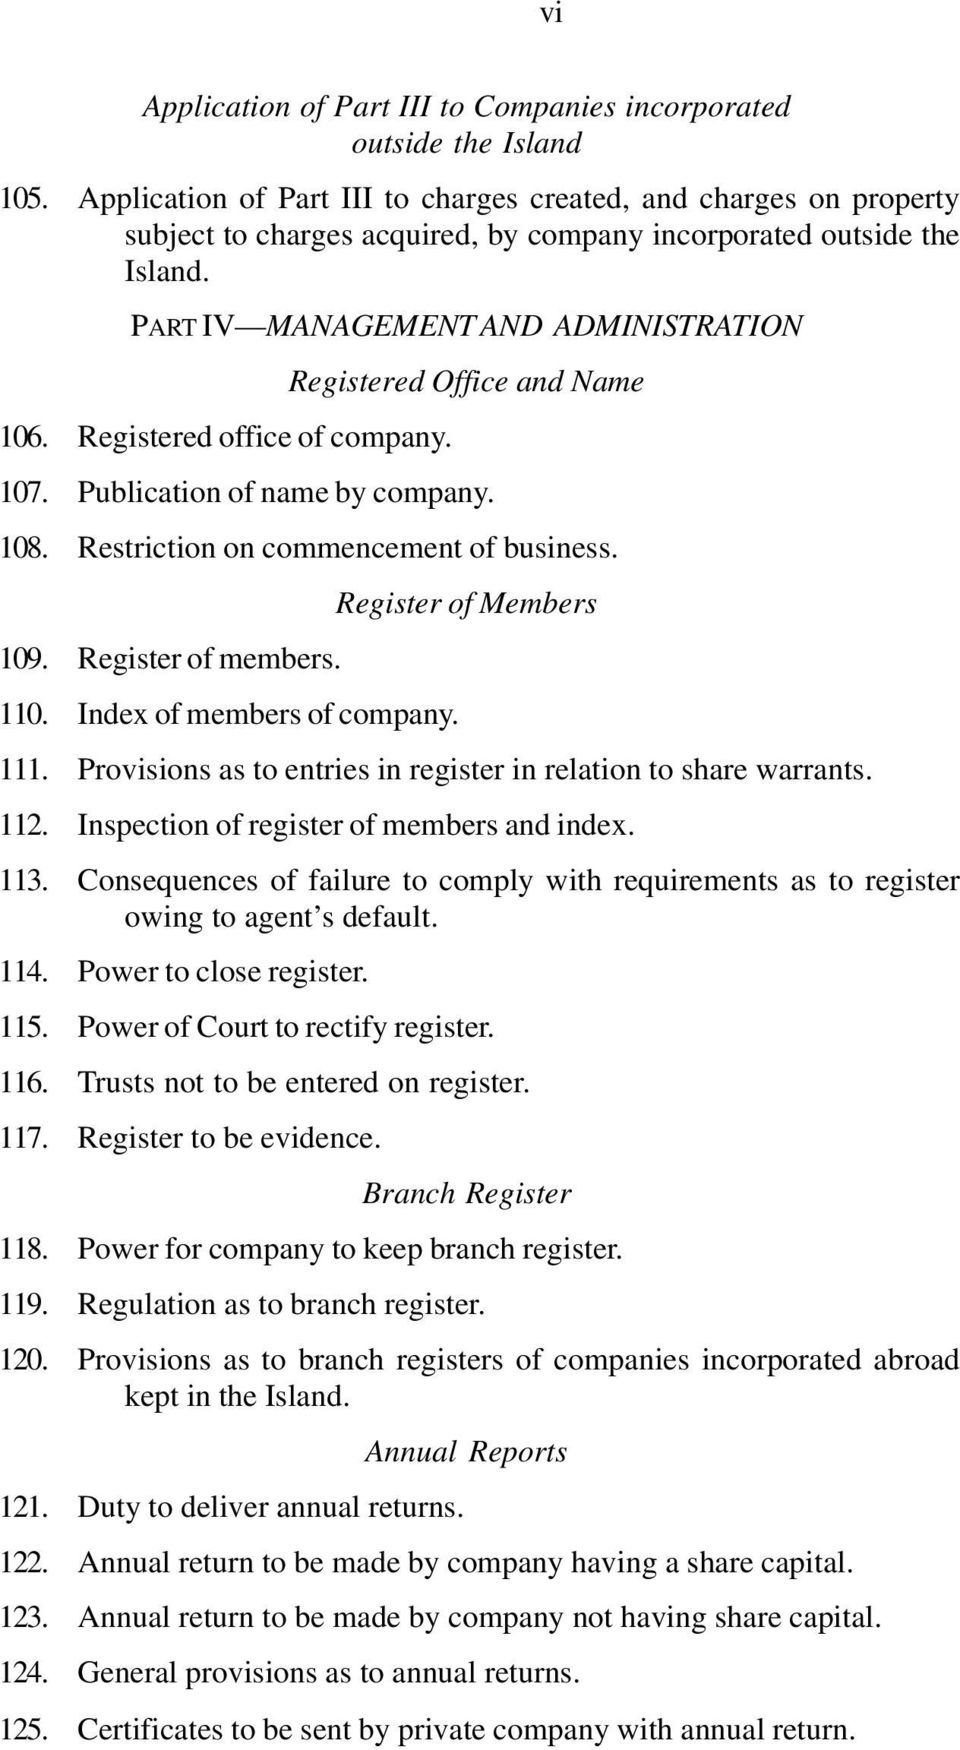 PART IV MANAGEMENT AND ADMINISTRATION Registered Office and Name 106. Registered office of company. 107. Publication of name by company. 108. Restriction on commencement of business.